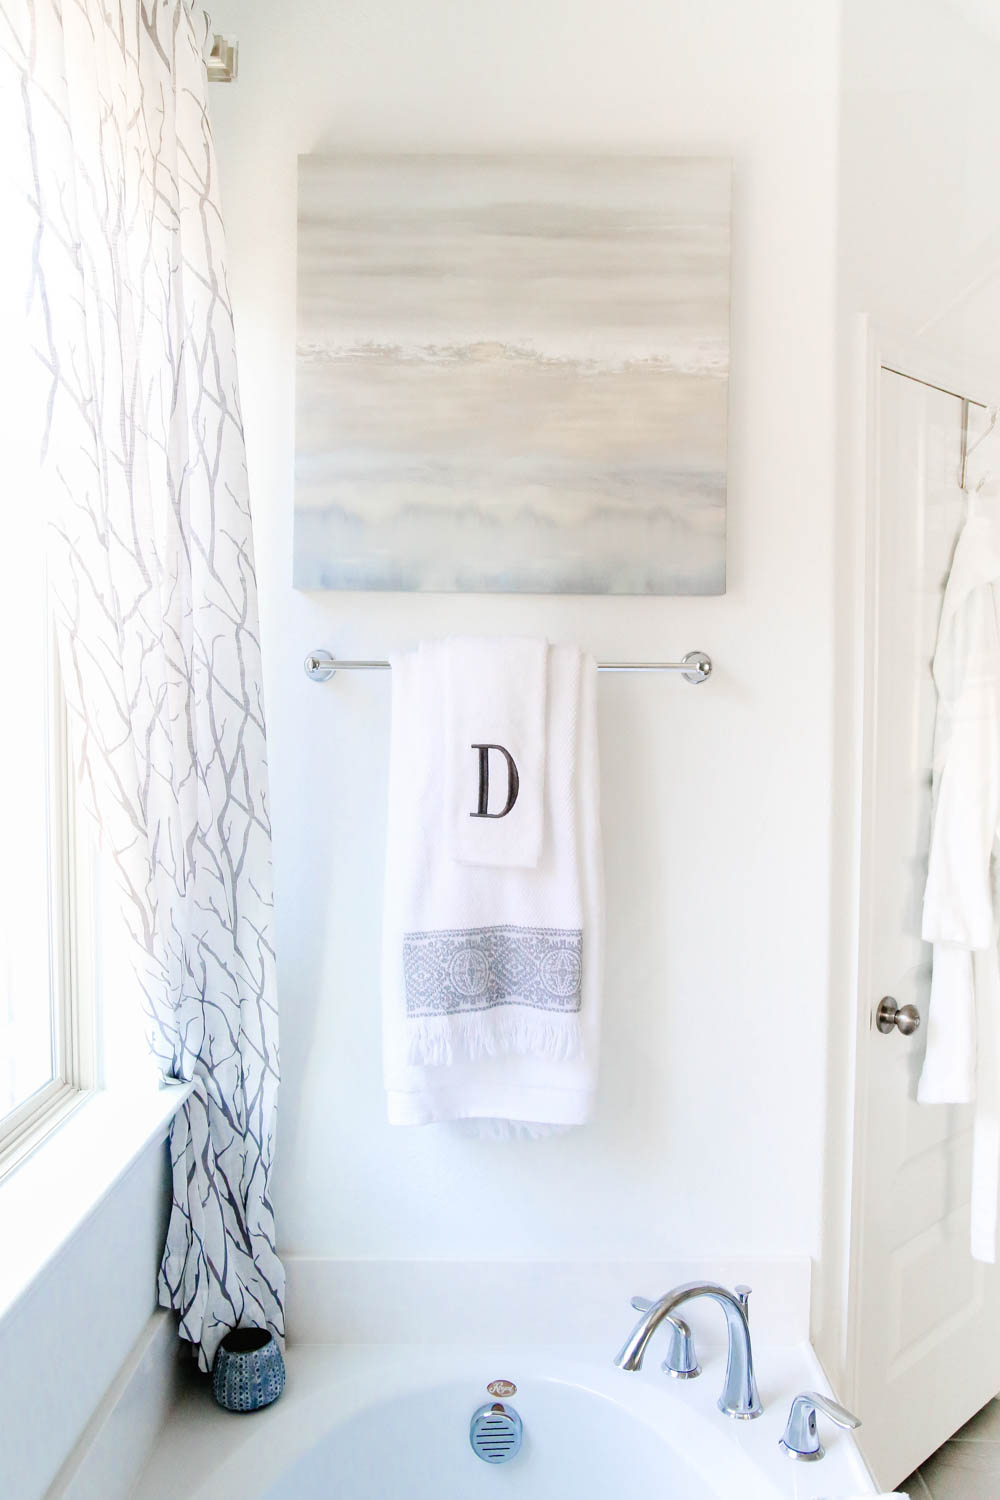 Add Art for a beautiful touch of whimsy and personality to a bathroom. #AtHomeStores #AtHomeFinds #ABlissfulNest #ad